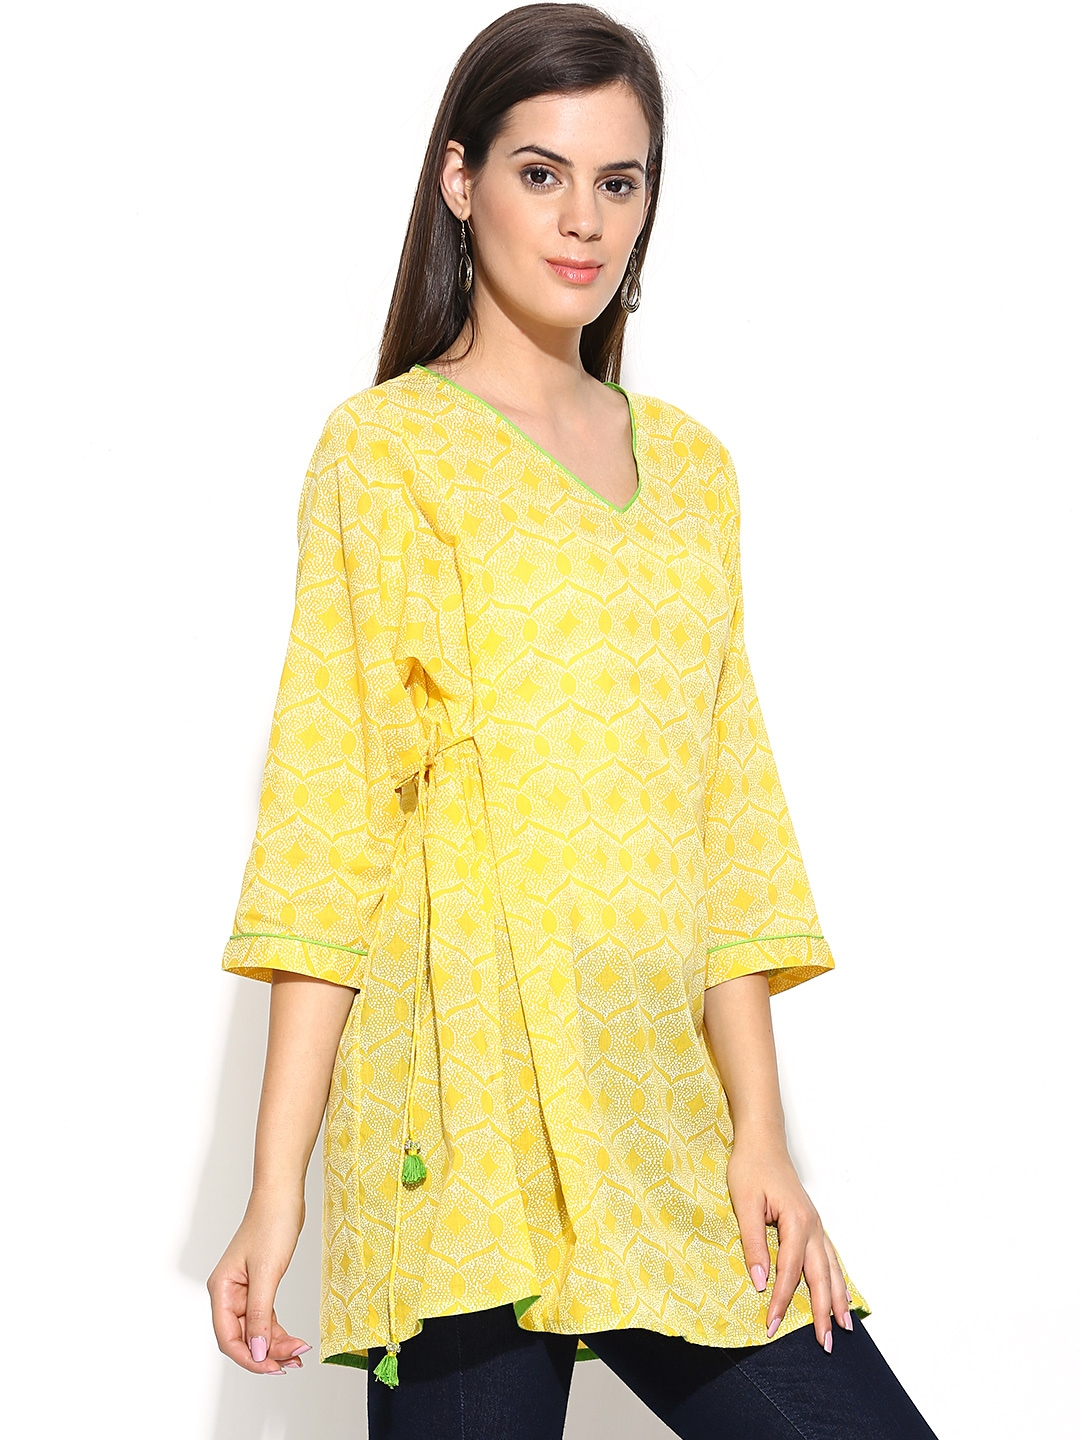 yellow tunic - up to 70% off. Well, darn. This item just sold out. Select notify me & we'll tell you when it's back in stock.